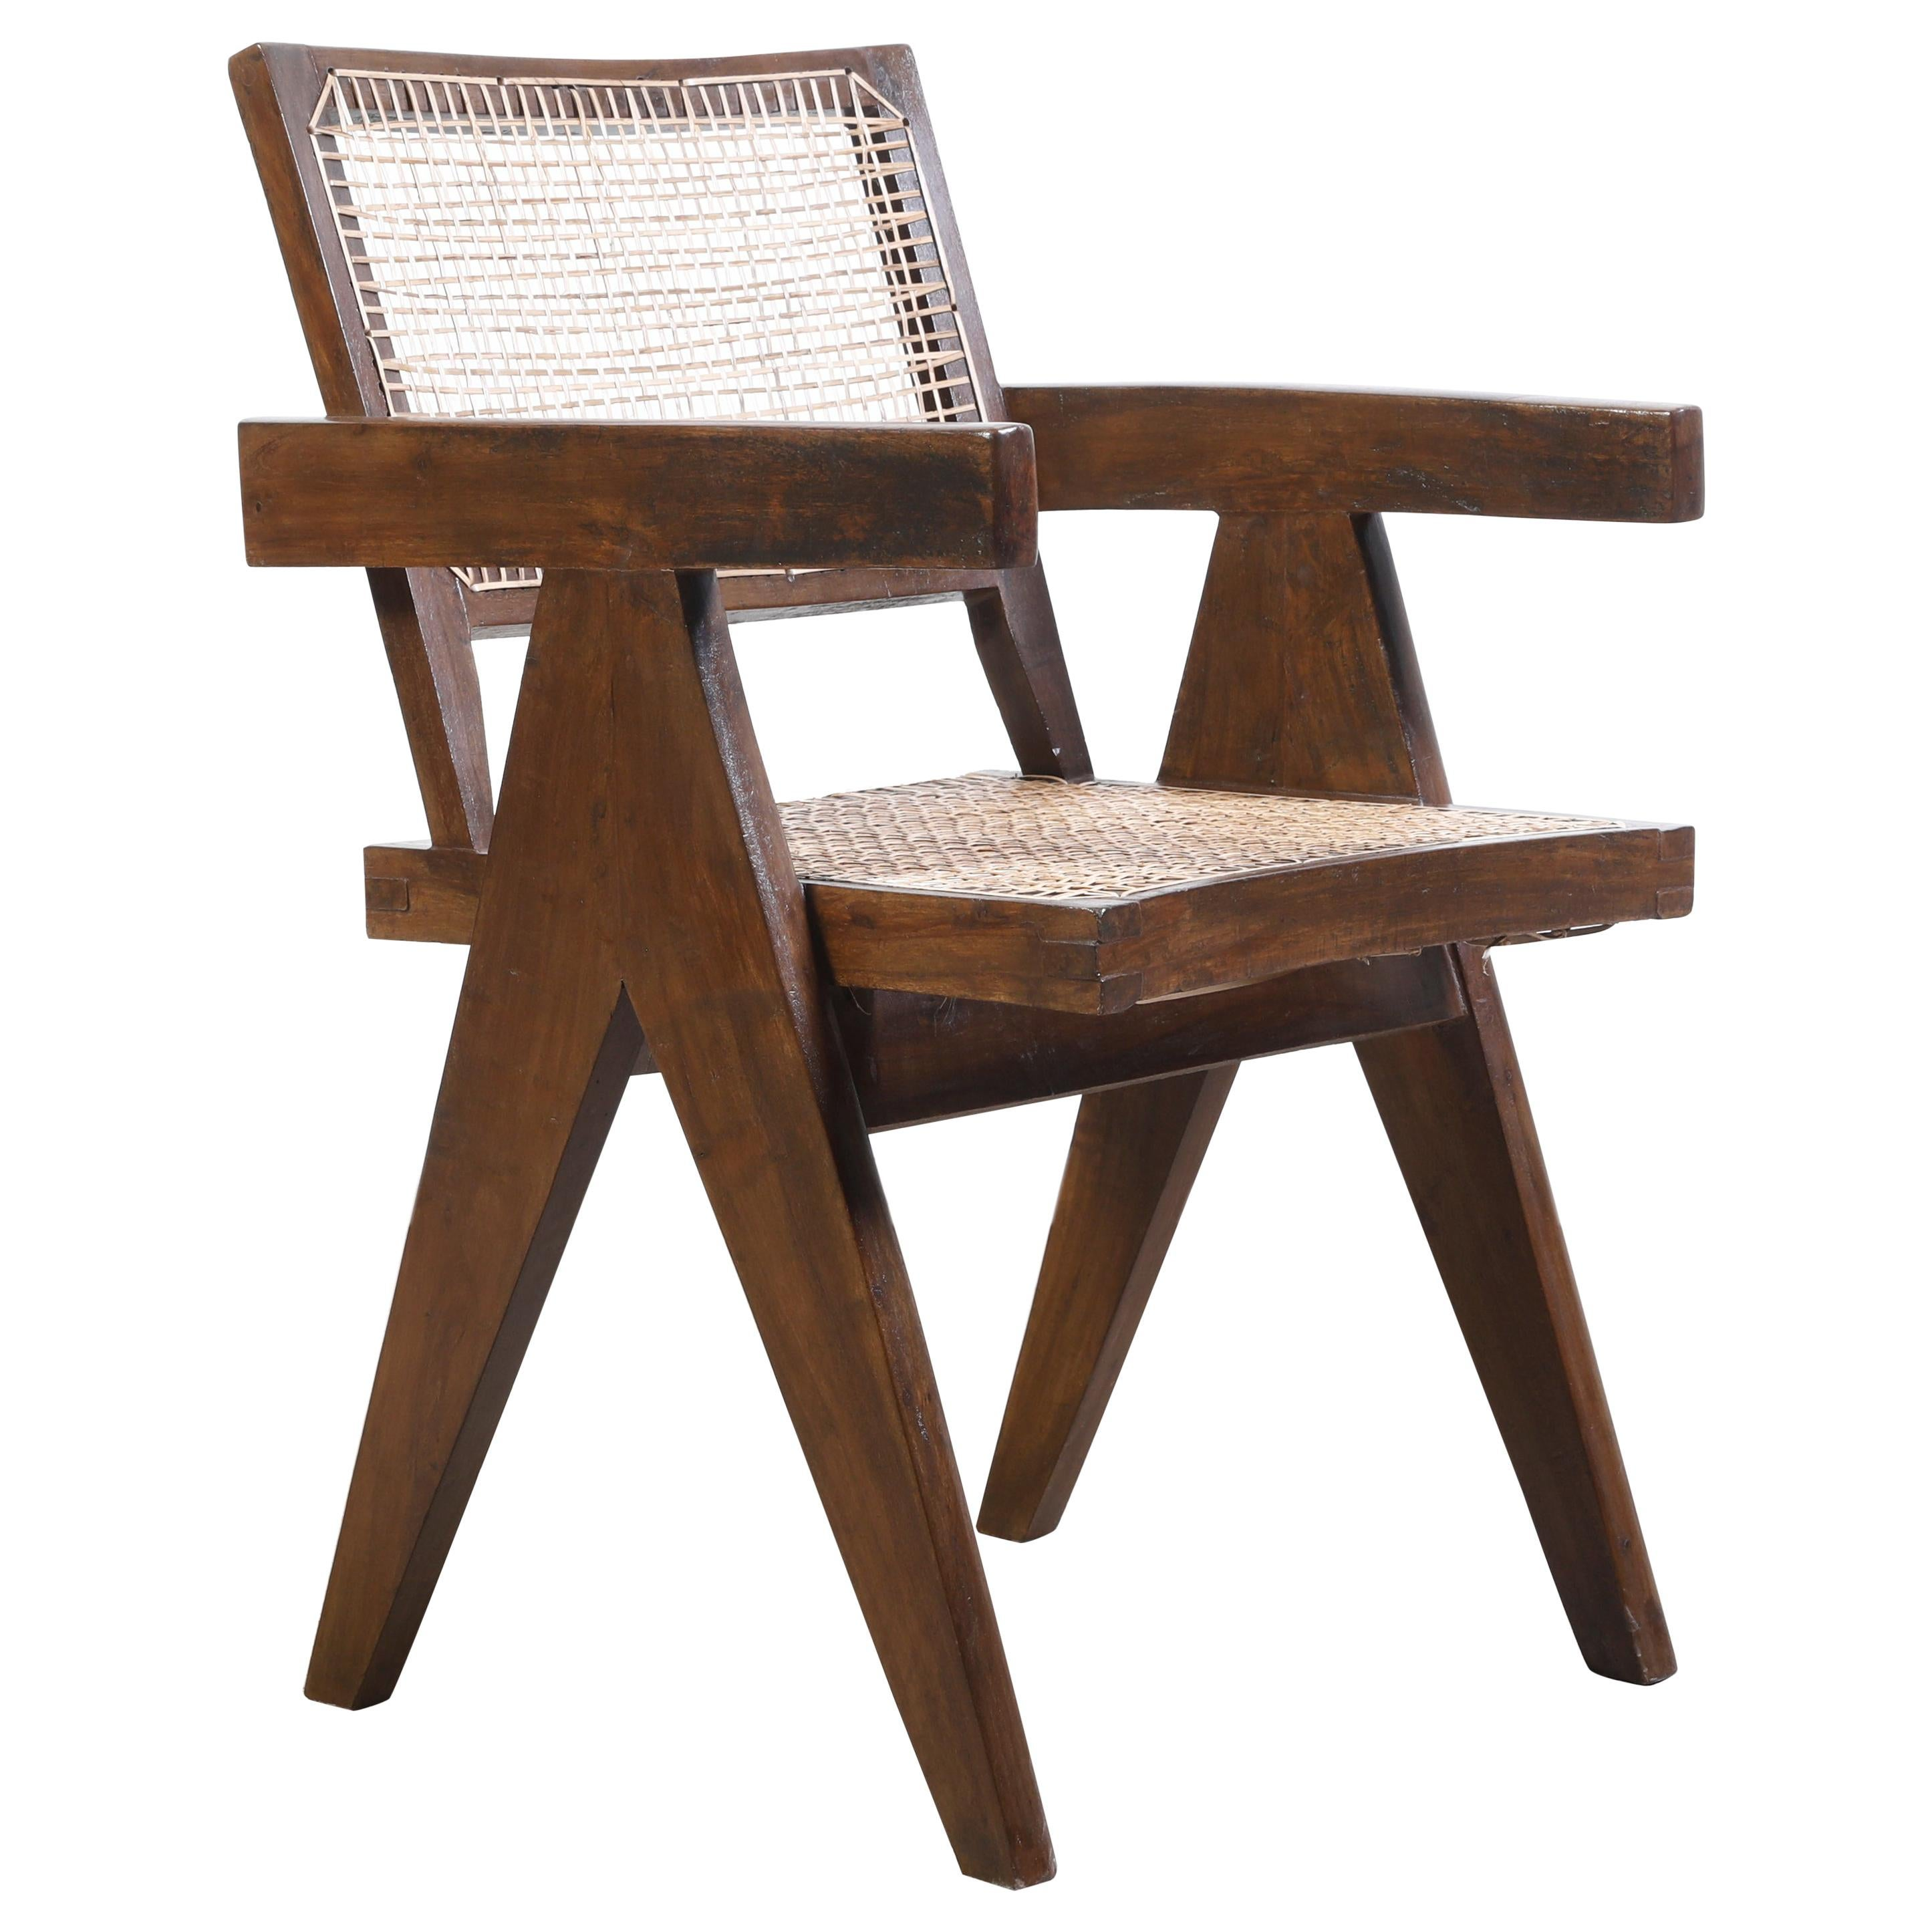 Pierre Jeanneret Office Cane Chair Authentic Mid-Century Modern Chandigarh